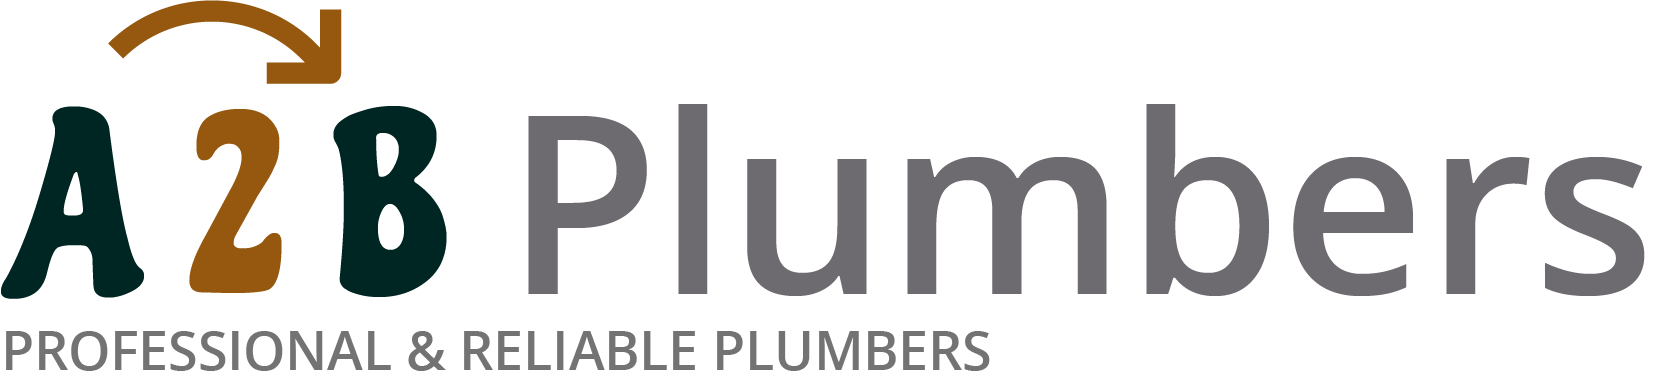 If you need a boiler installed, a radiator repaired or a leaking tap fixed, call us now - we provide services for properties in Middlesex and the local area.